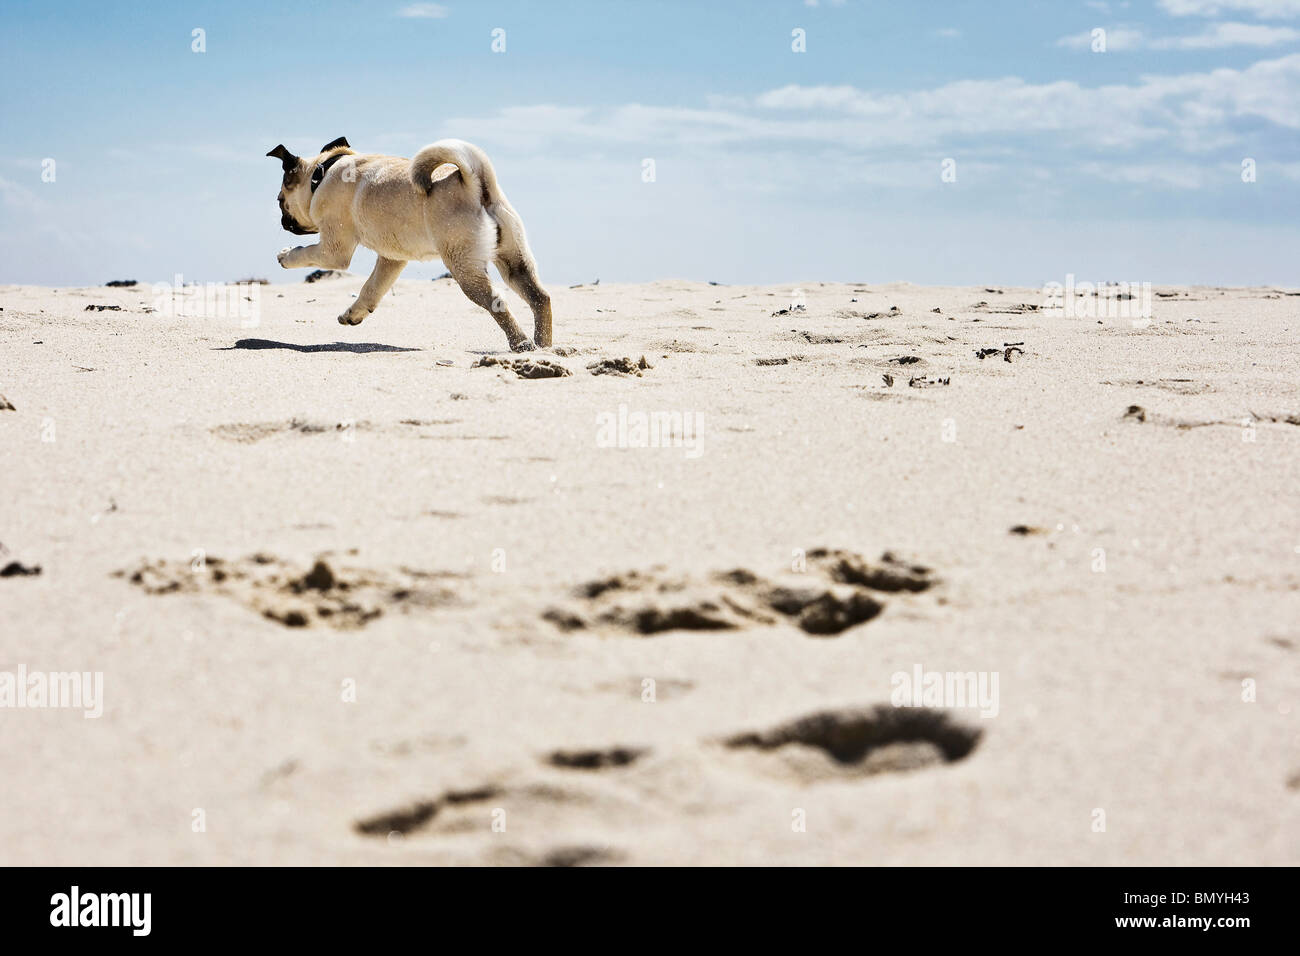 pug dog puppy running the beach - Stock Image